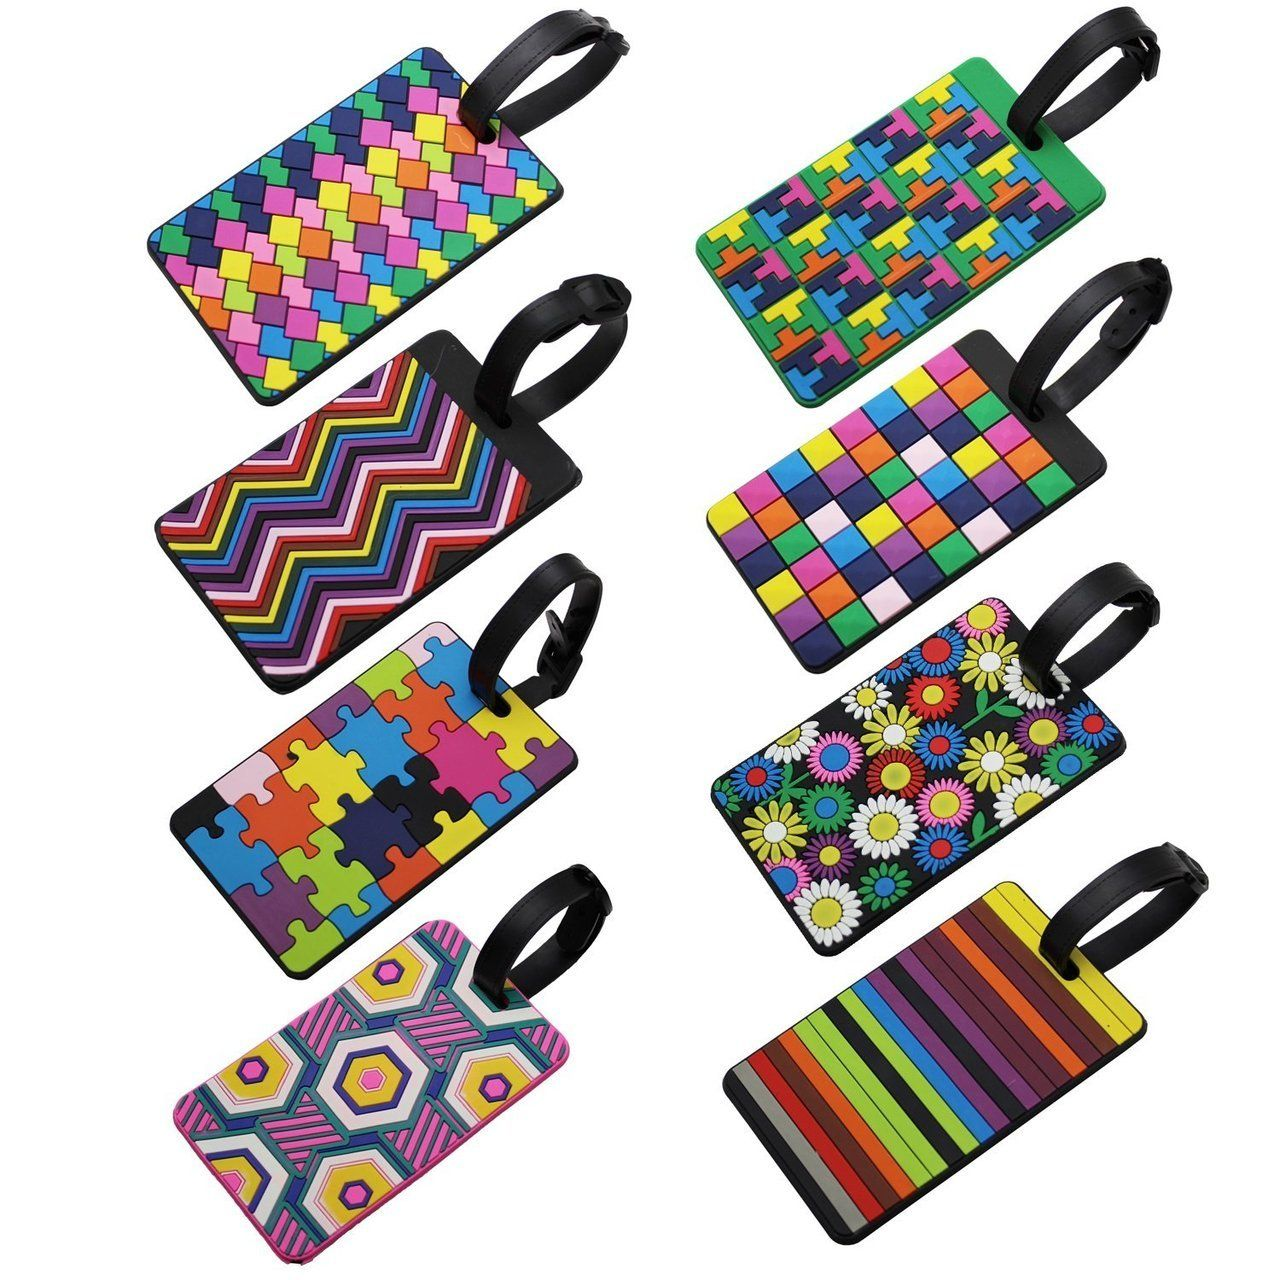 Ljy travel luggage suitcase labels id tags business card holder set ljy travel luggage suitcase labels id tags business card holder set of specificationsbr color colorful br size cm in br material pvc br br reheart Choice Image